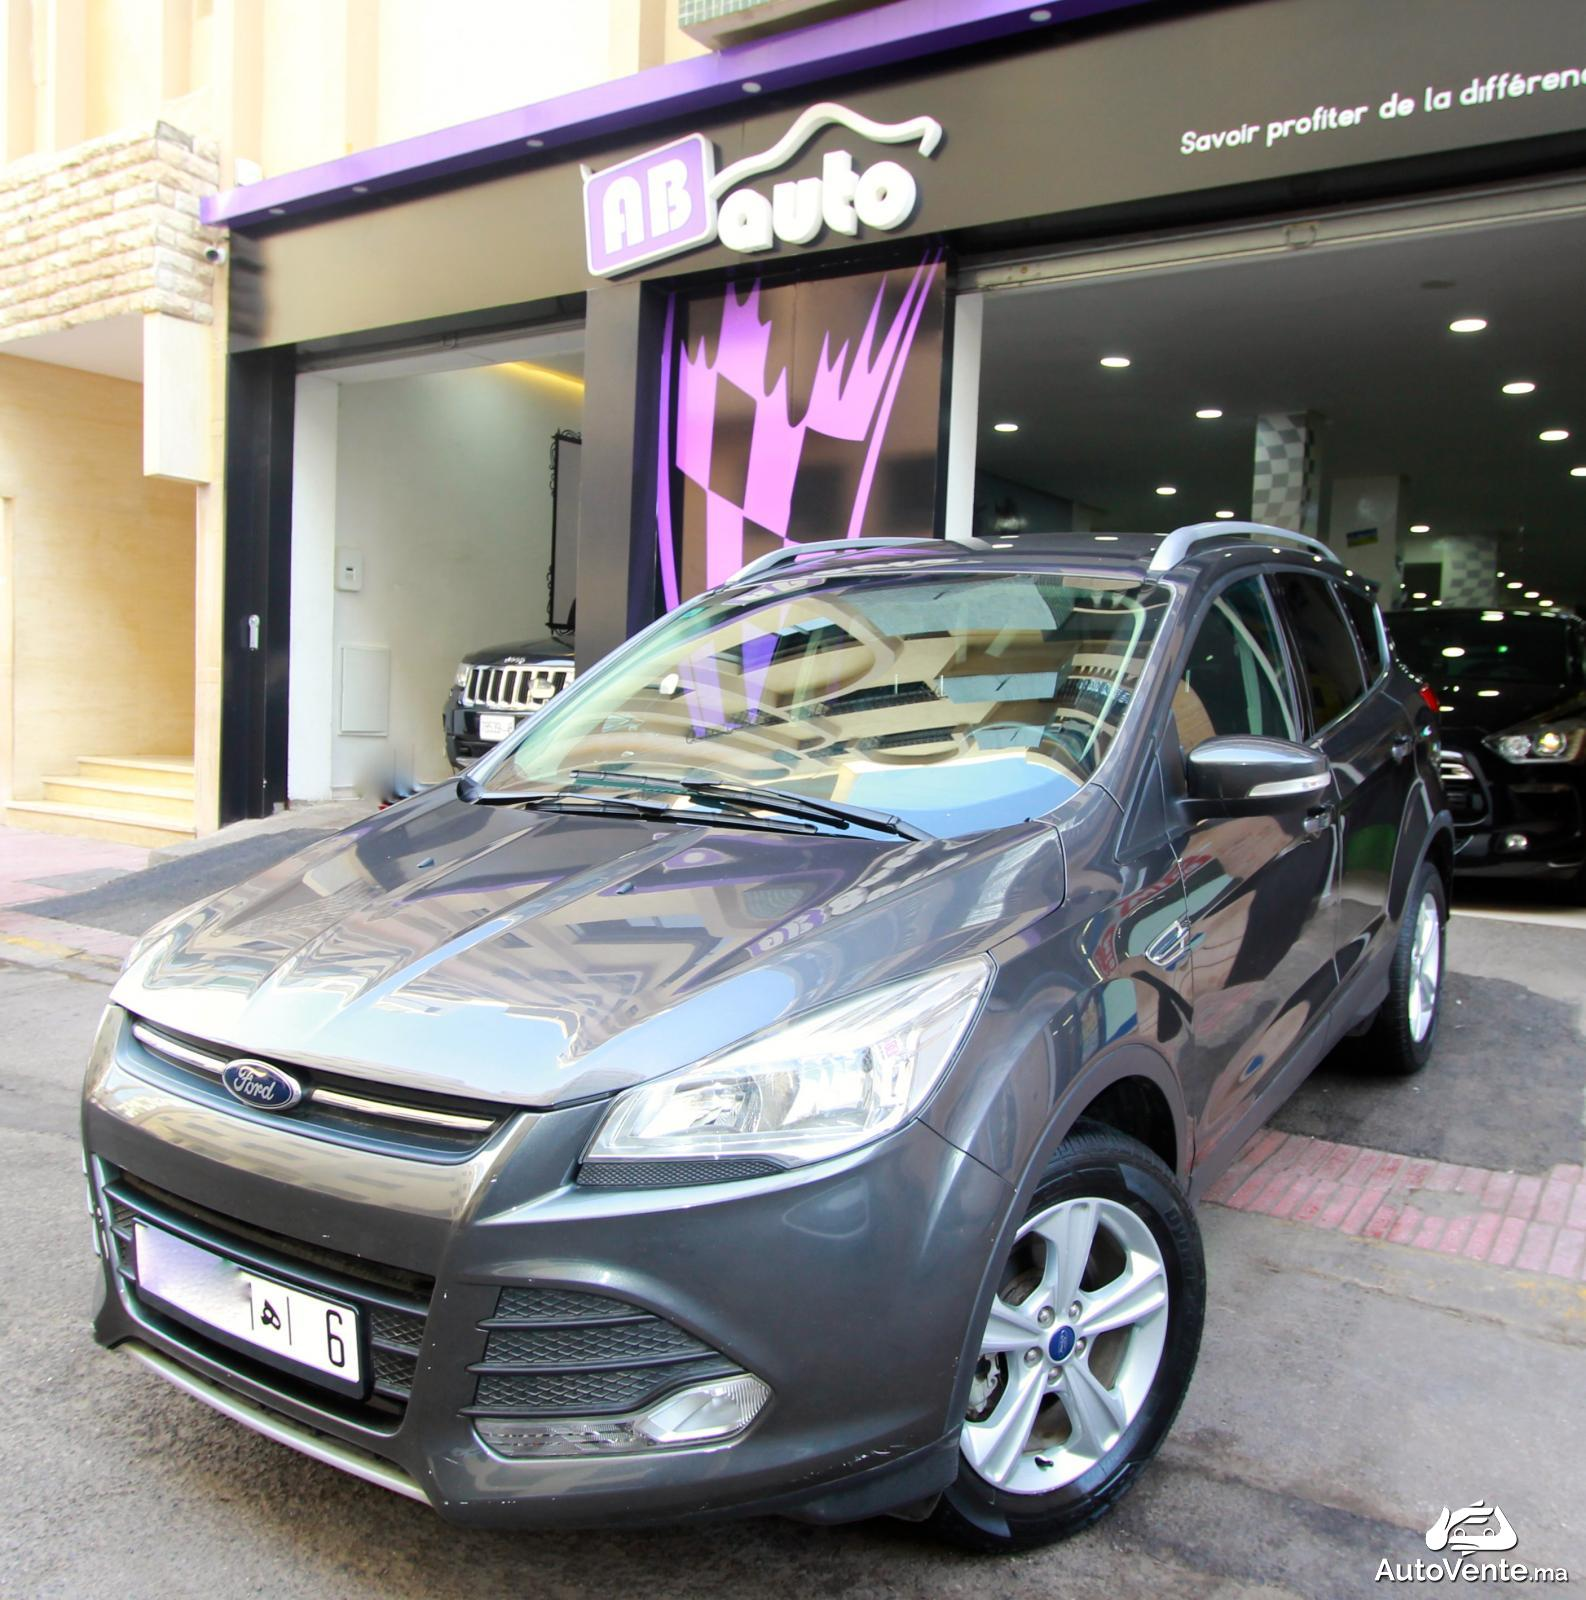 acheter ford kuga d 39 occasion a casablanca maroc autovente. Black Bedroom Furniture Sets. Home Design Ideas